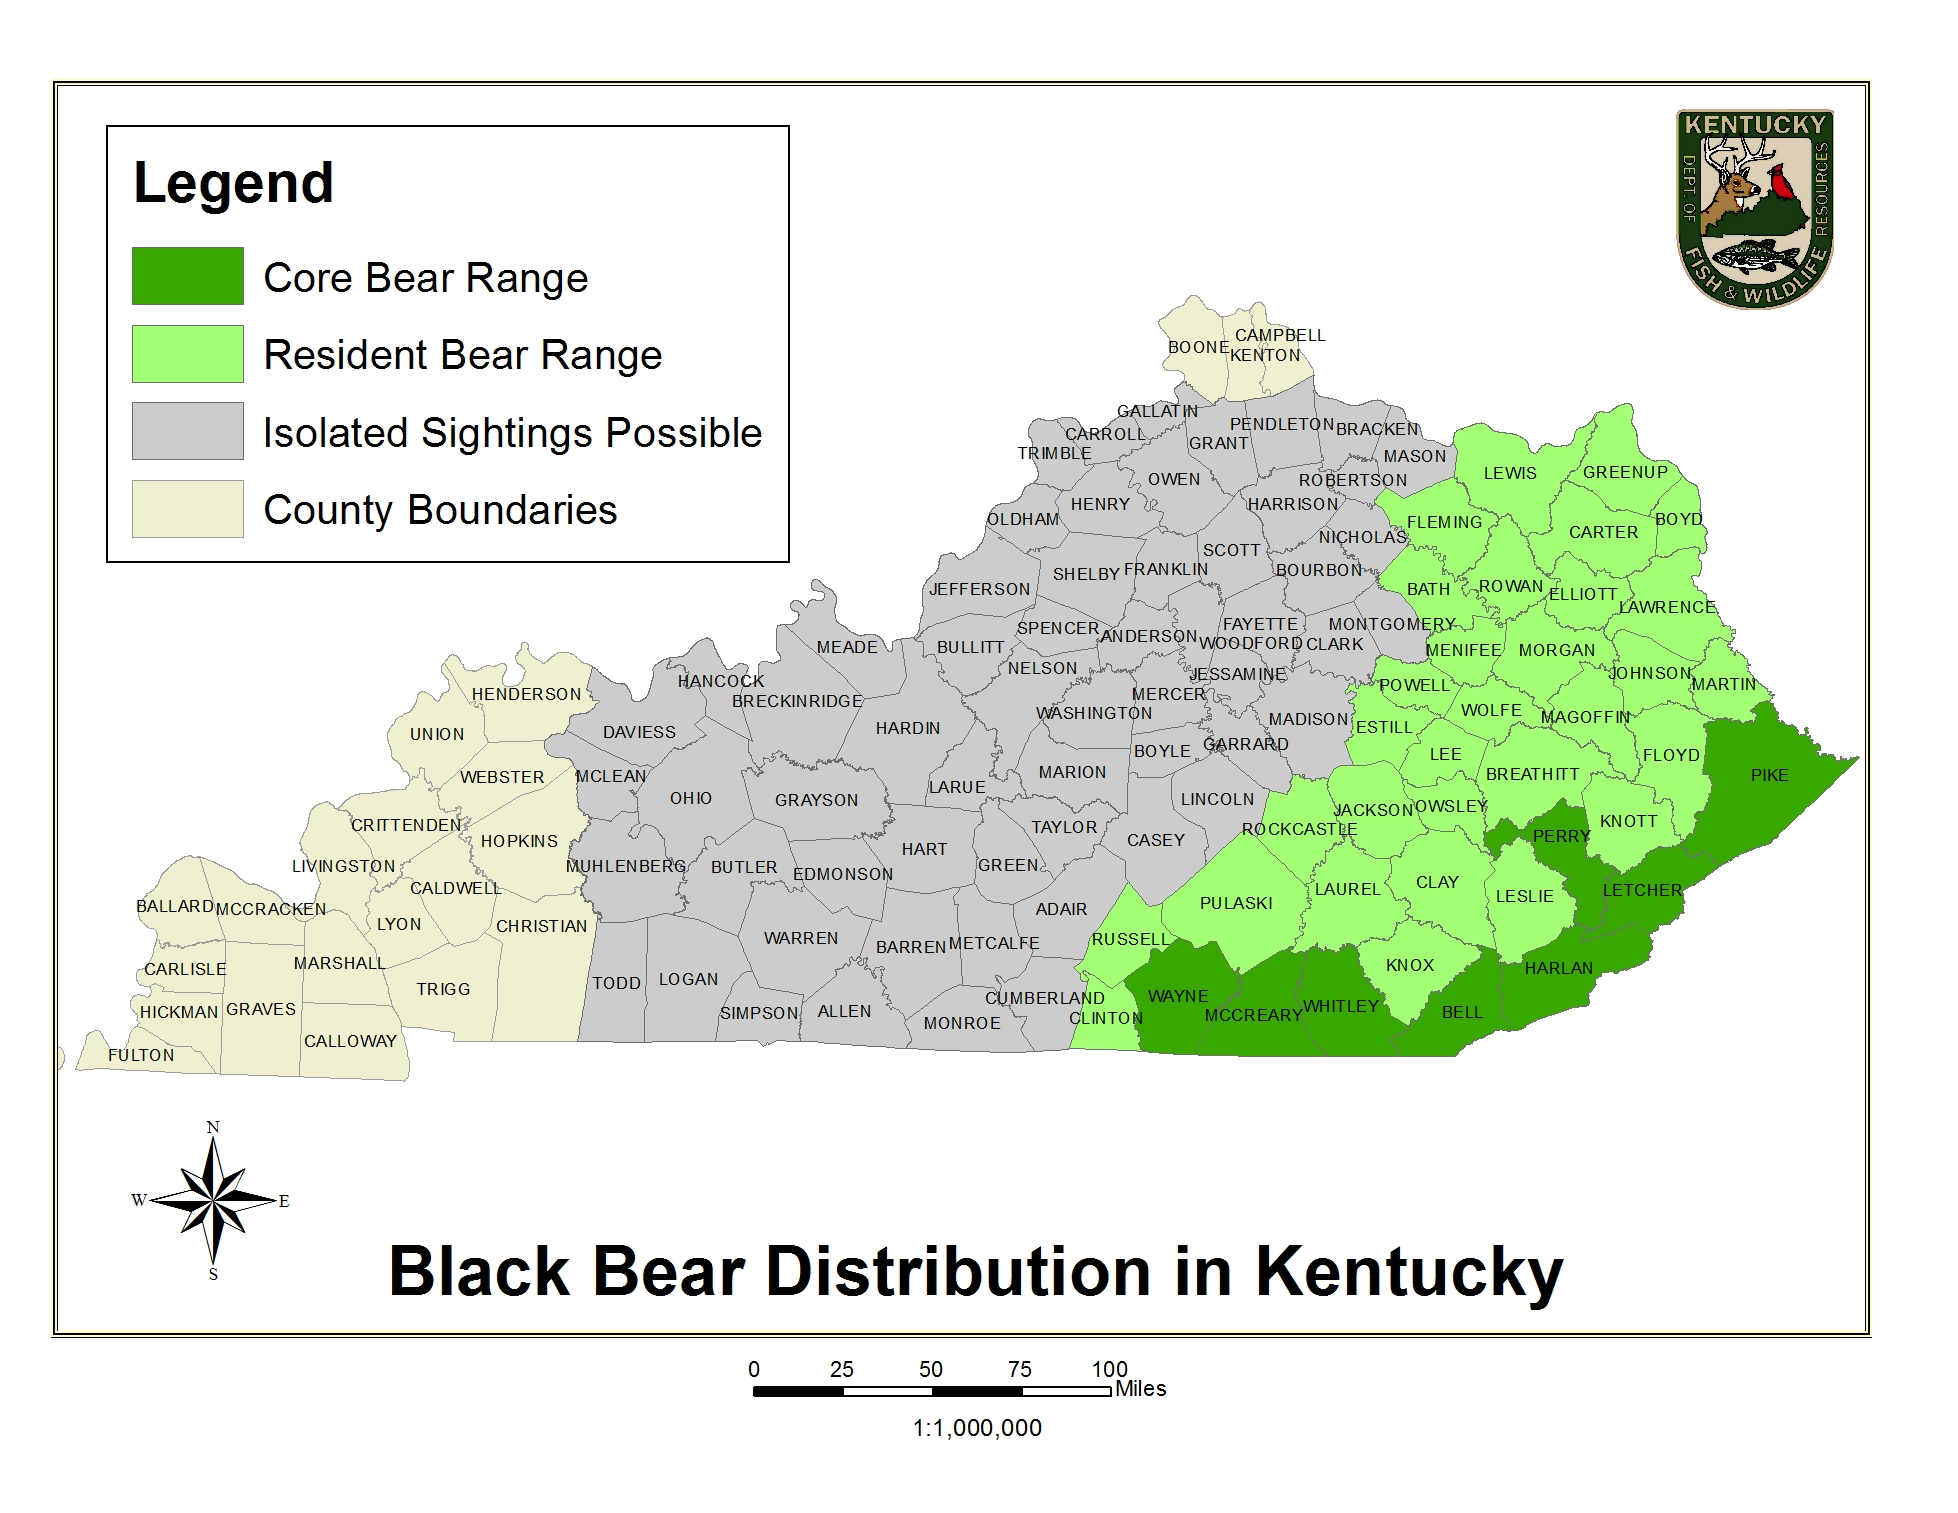 Kentucky Department of Fish & Wildlife Black Bears on ky senate district map, ky city map, ky geography map, kentucky map, ky law enforcement map, ky road map, ky regional map, ky counties by zip, ky states map, ky cities map, ky towns map, ky climate map, ky mountains map, ky co map, ky weather map, ky lake map, ky tn map, ky rivers map, ky regions map, ky tourism map,